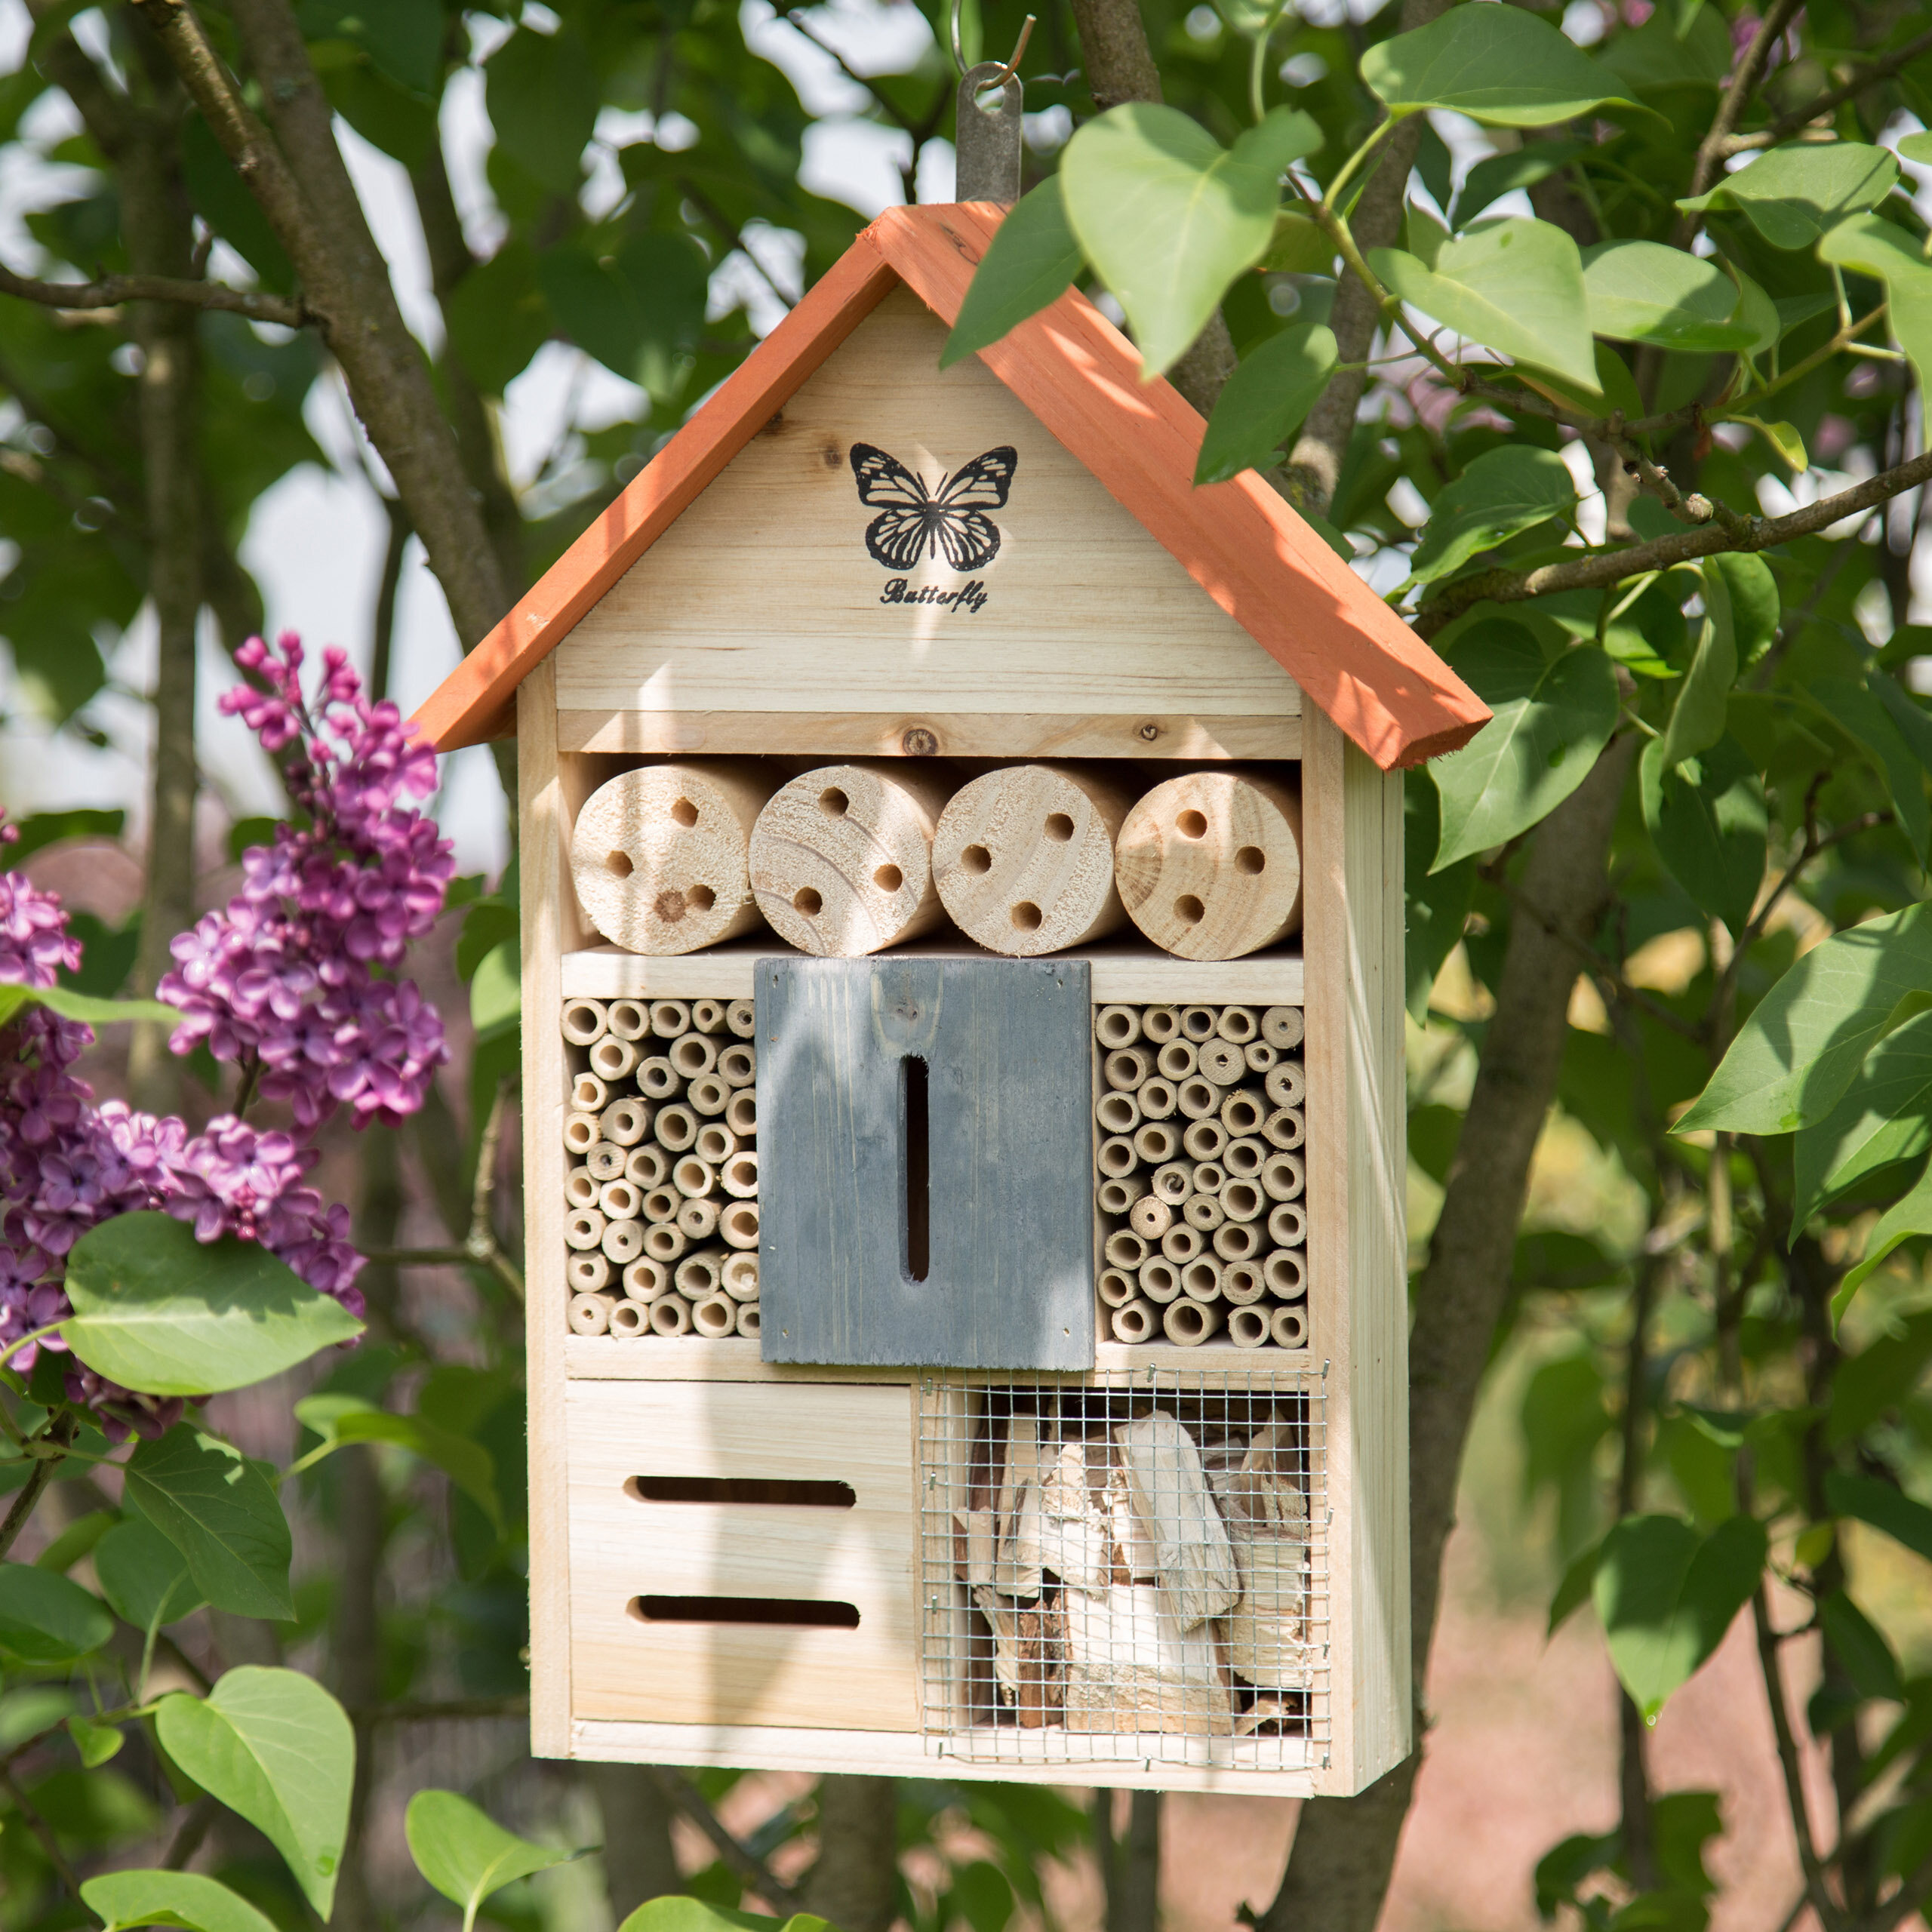 Insect Habitat Tower Hotel Wooden Natural Bee Nest Butterfly Bug Lady bird House